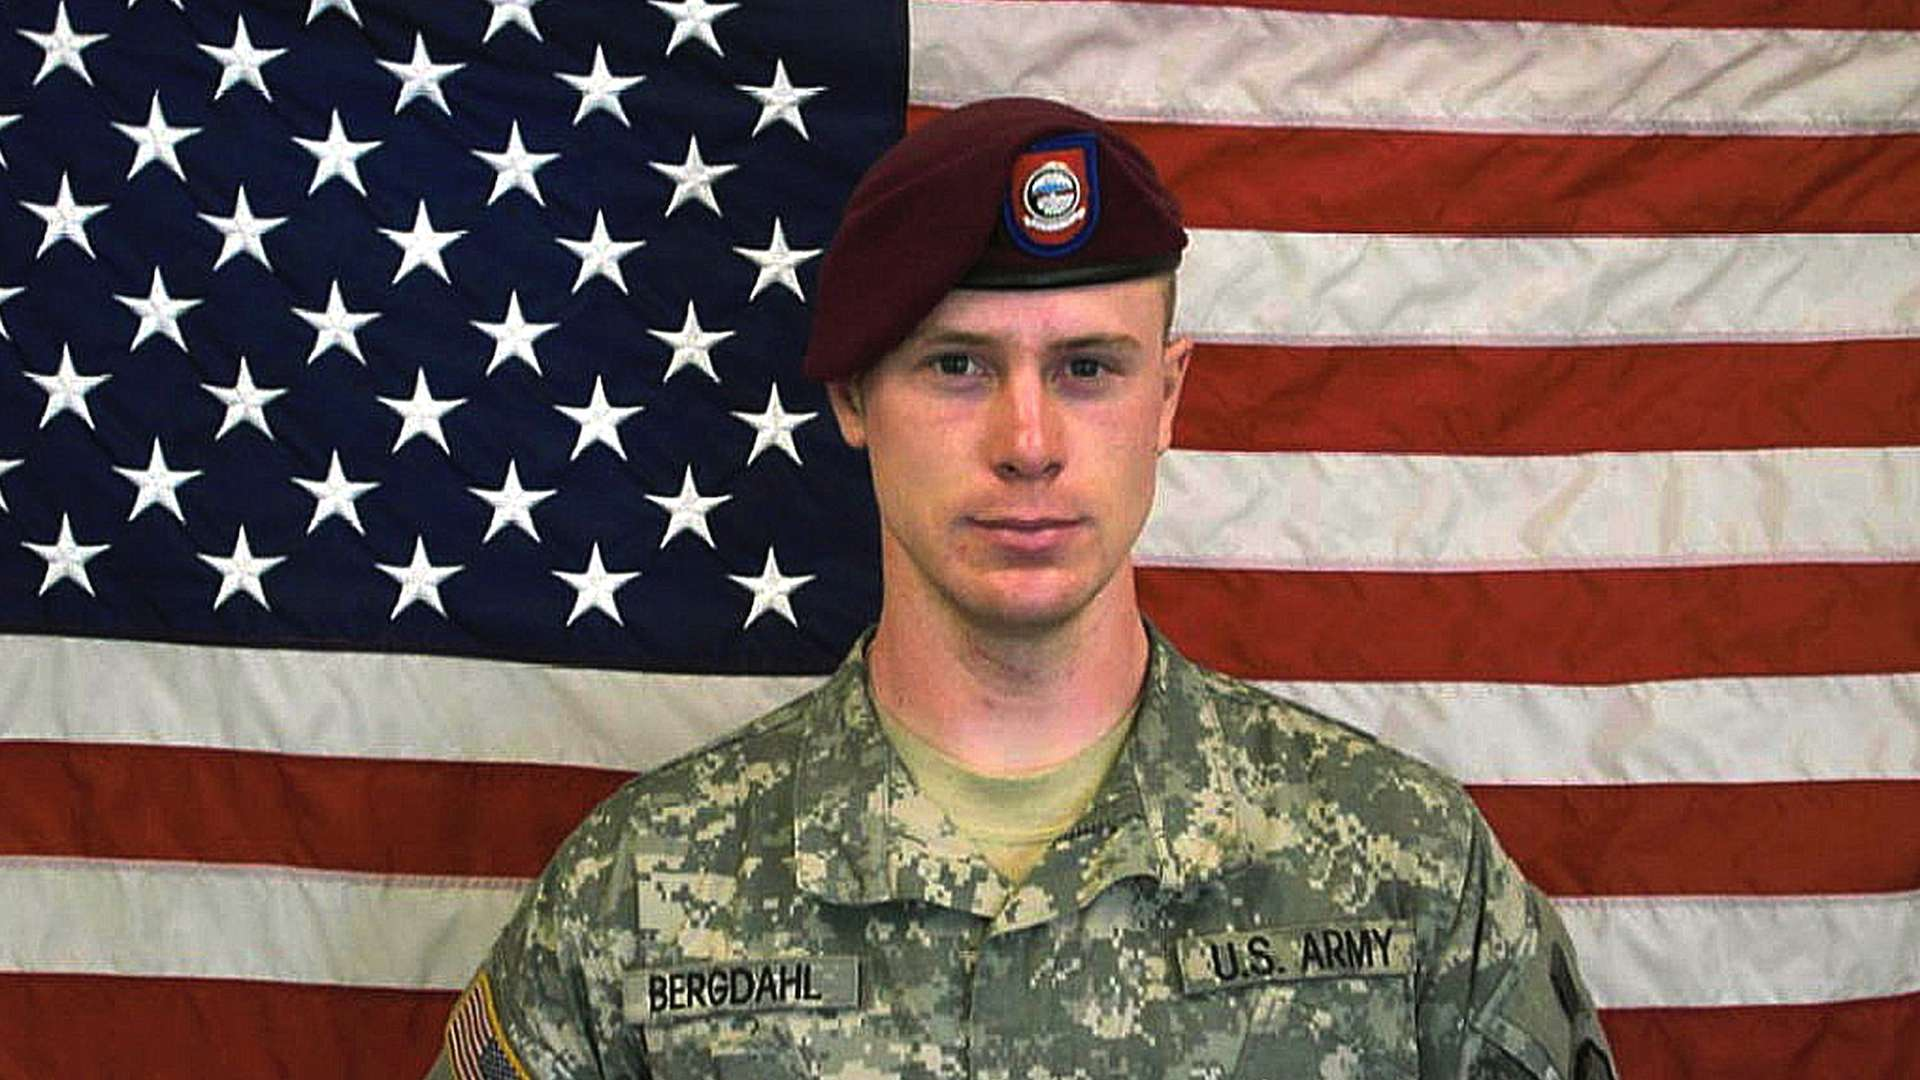 "(FILES)This US Army file handout photo obtained shows Private First Class(Pfc) Bowe Bergdahl, before his capture by the Taliban in Afghanistan. US officials have confirmed March 25, 2015 that Bergdahl will be charged with desertion and misbehavior before the enemy for leaving his post in Afghanistan before being captured and held by the Taliban for five years. Bergdahl went missing from his base in Afghanistan in June 2009. In May 2014, the US released five Taliban militants held in Guantanamo Bay in exchange for Bergdahl's return. AFP PHOTO / HANDOUT / US ARMY == RESTRICTED TO EDITORIAL USE / MANDATORY CREDIT: ""AFP PHOTO HANDOUT- US ARMY ""/ NO MARKETING - NO ADVERTISING CAMPAIGNS NO A LA CARTE SALES / DISTRIBUTED AS A SERVICE TO CLIENTS ==--/AFP/Getty Images"